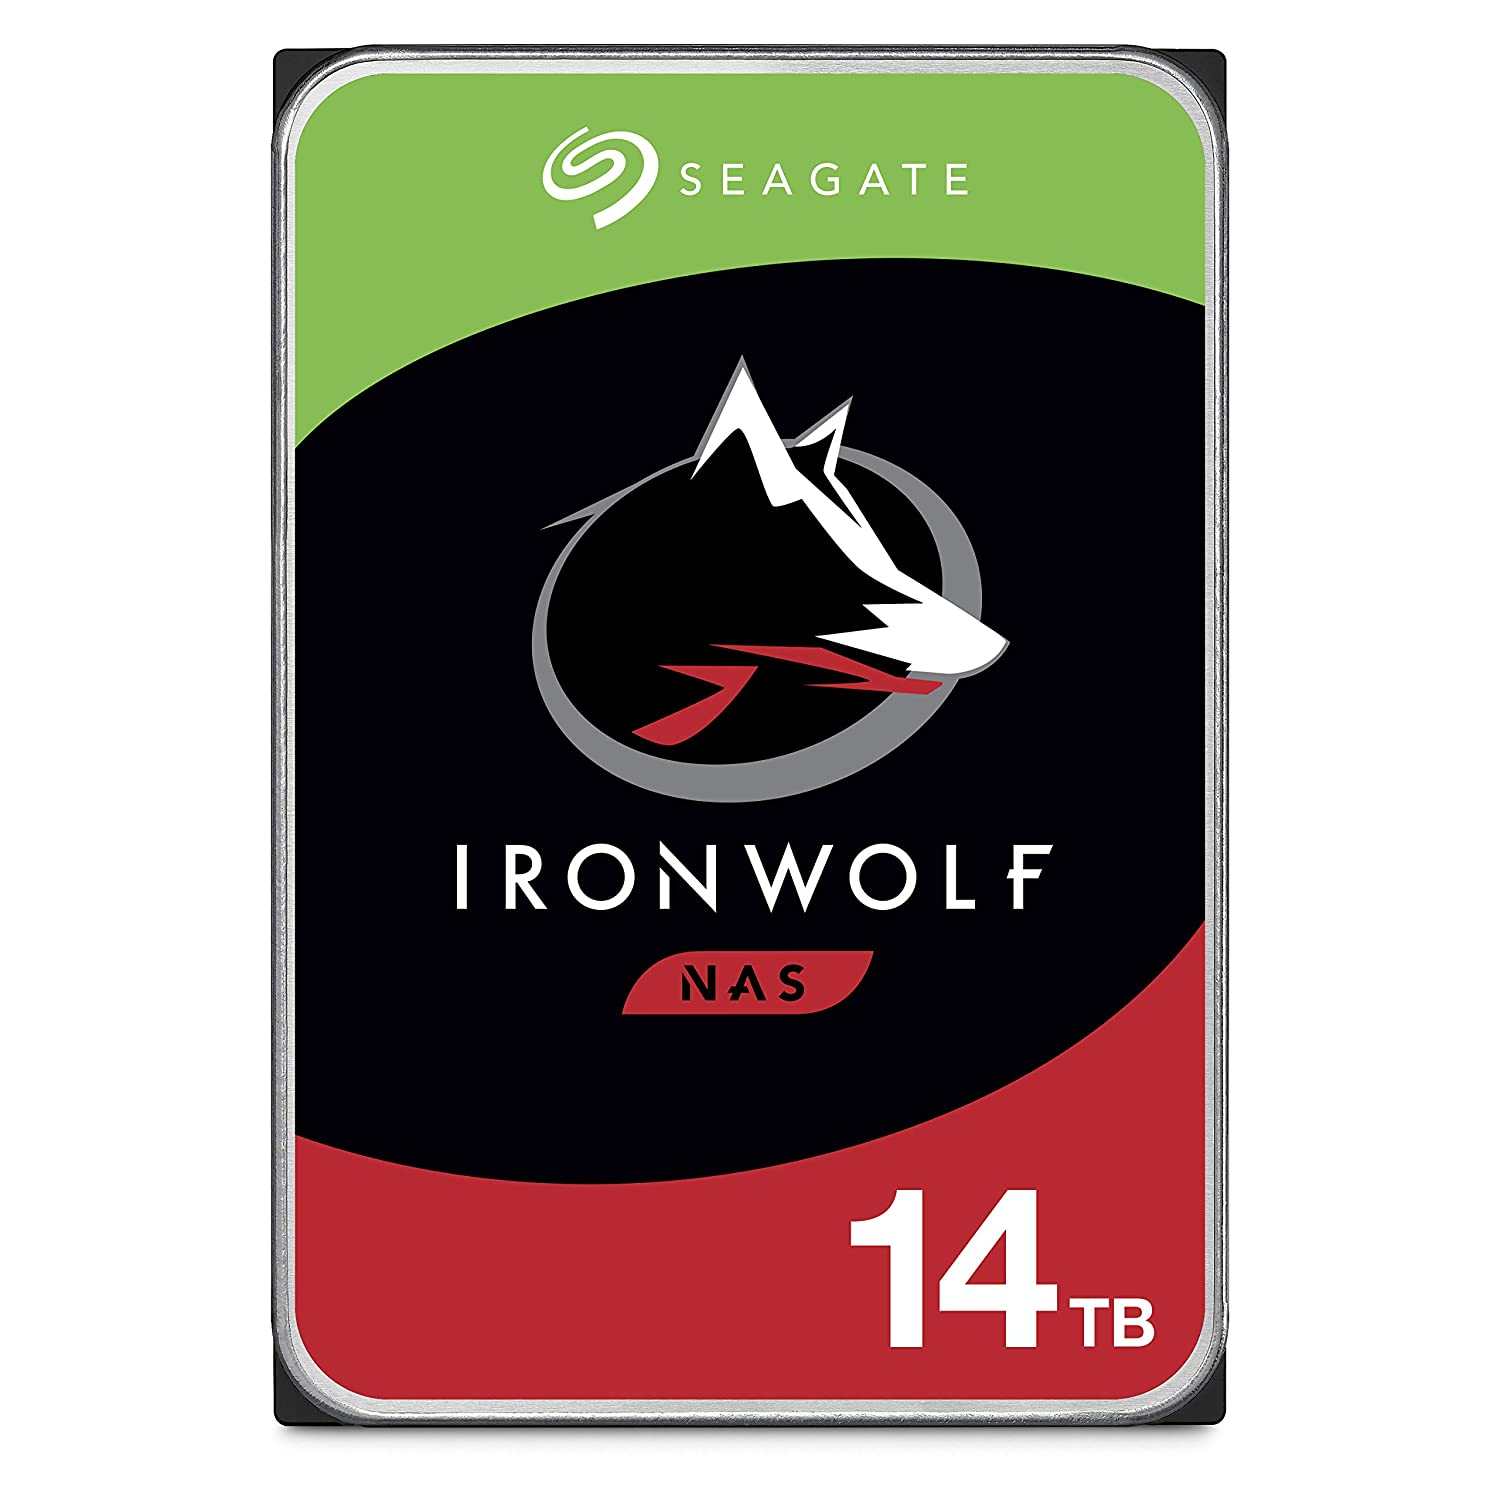 Seagate IronWolf 14TB NAS Internal Hard Drive HDD – 3.5 Inch SATA 6Gb/s 7200 RPM 256MB Cache for RAID Network Attached Storage – Frustration Free Packaging (ST14000VN0008)